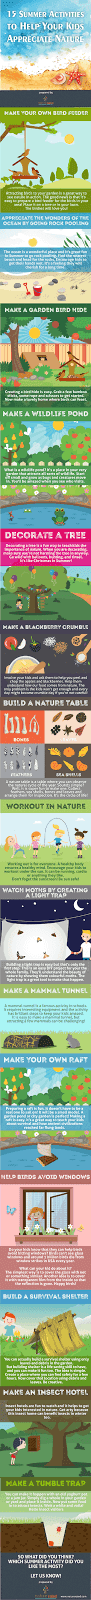 https://www.naturerated.com/15-summer-kids-activities/